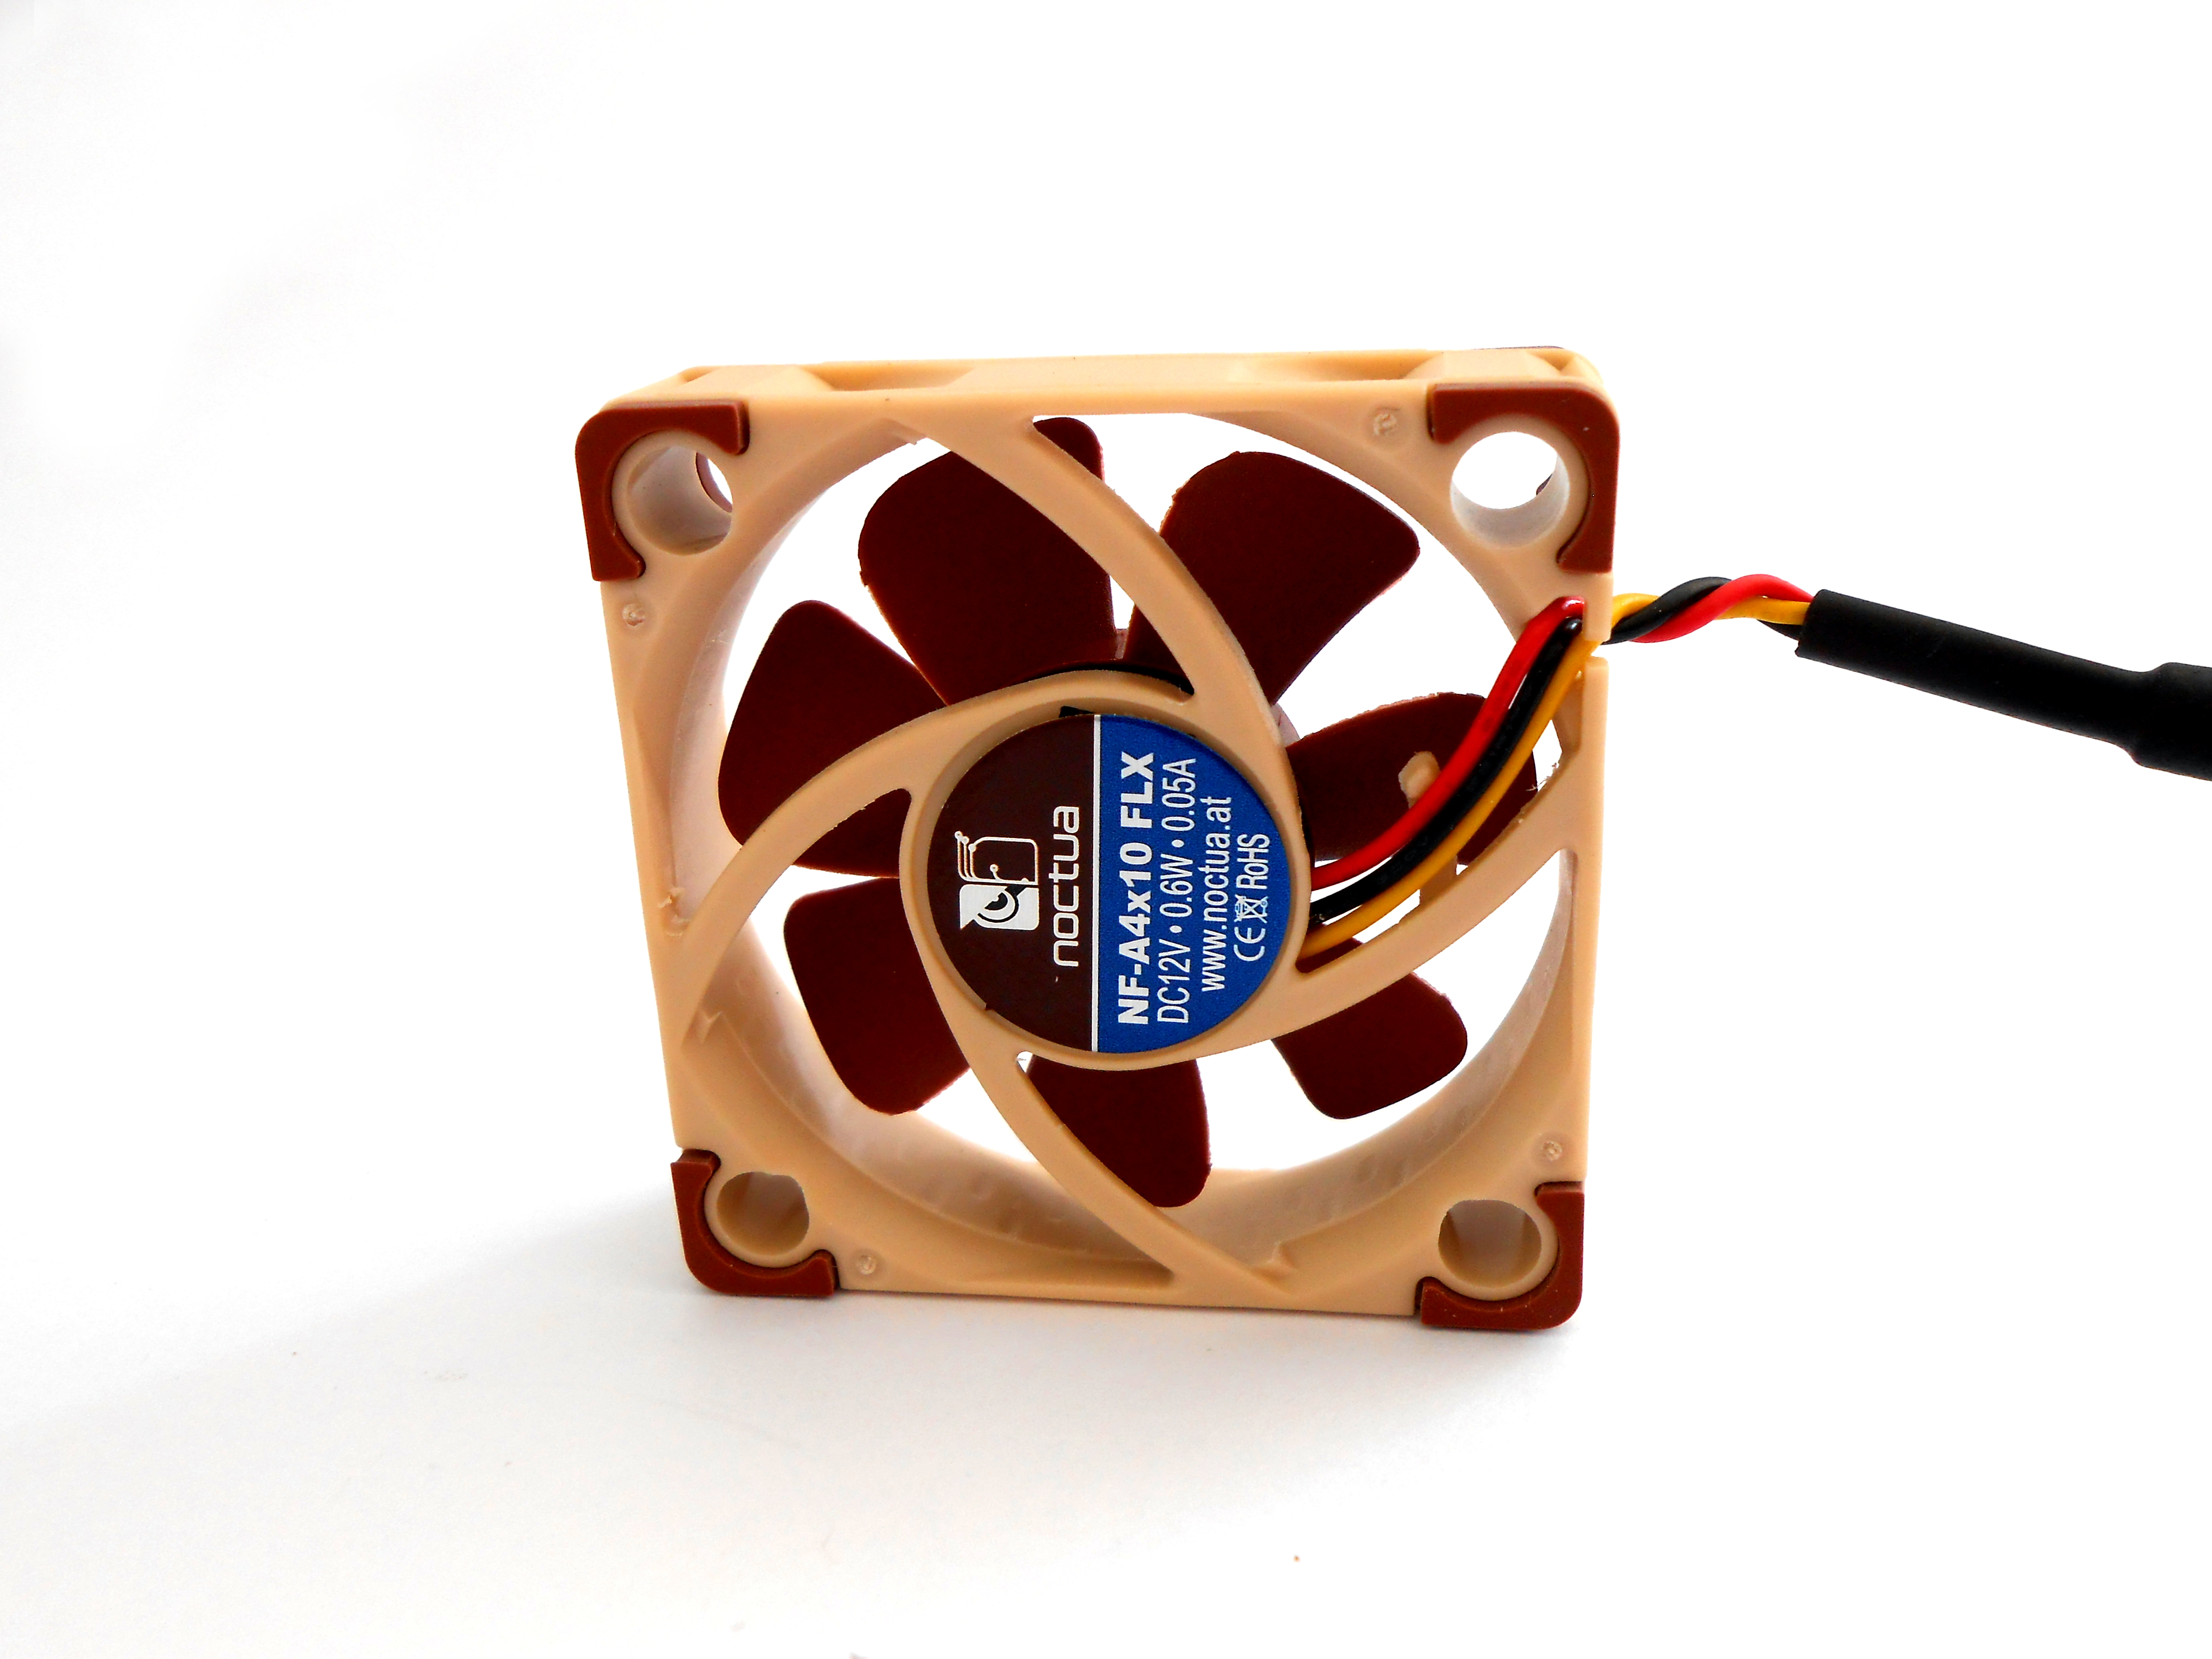 Noctua Fan Roundup Small Form Factor Network Foxconn 12v Wire Diagram Visible Coloured Wires But This Time There Are Only Three As Is Not A Pwm Controlled Product An Understandable Fact Considering The Size